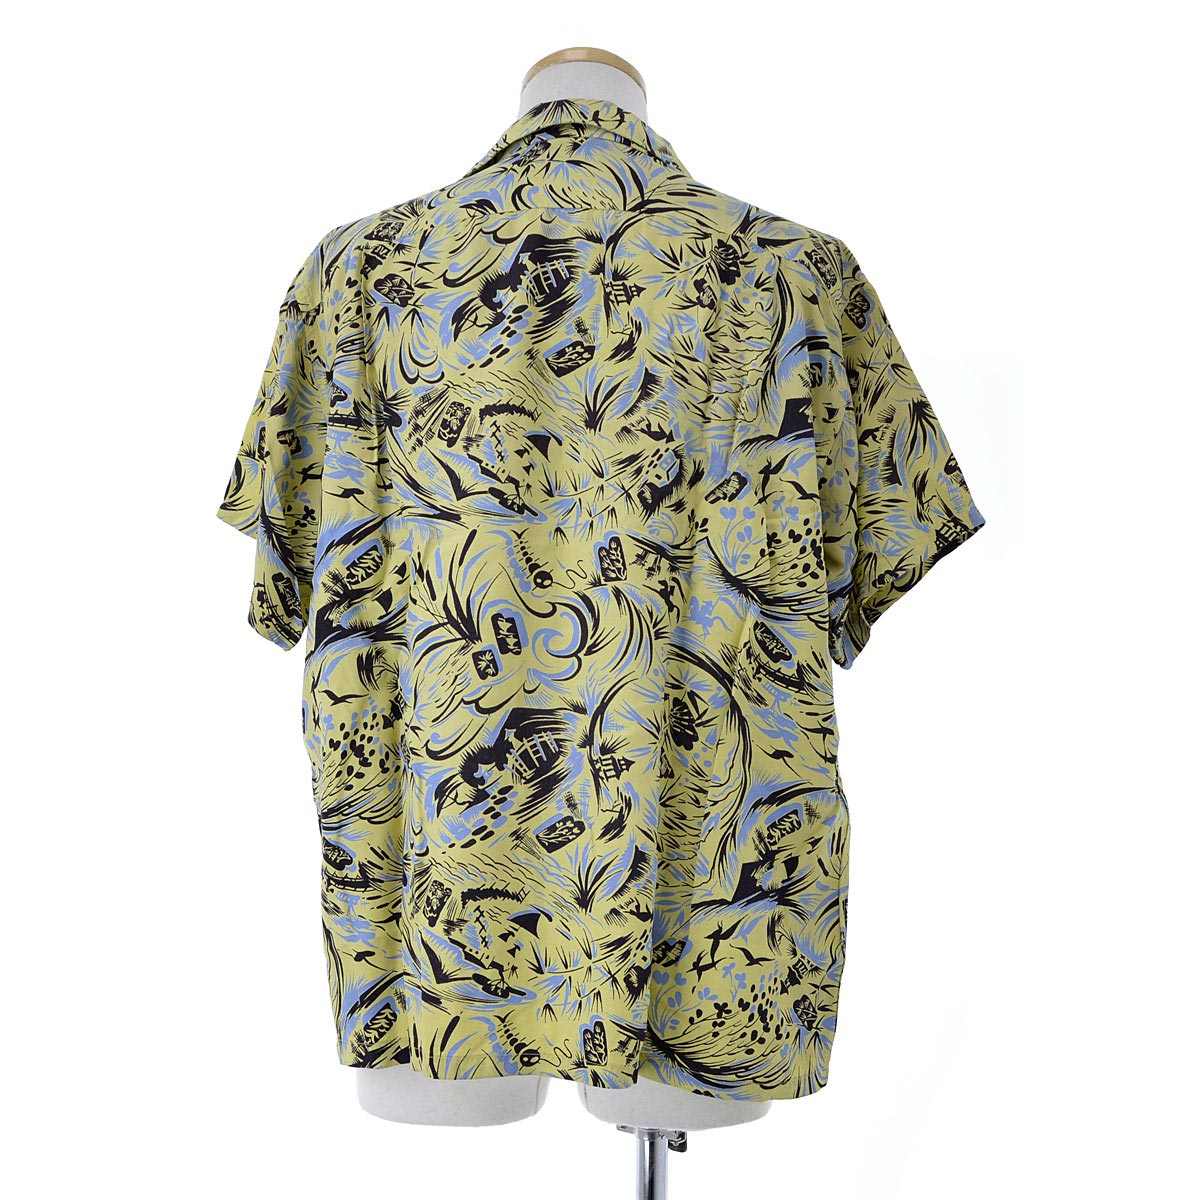 fa5815edc kanful: VAN HEUSEN 50 s gokuu Japanese Hawaiian short sleeve shirt ...